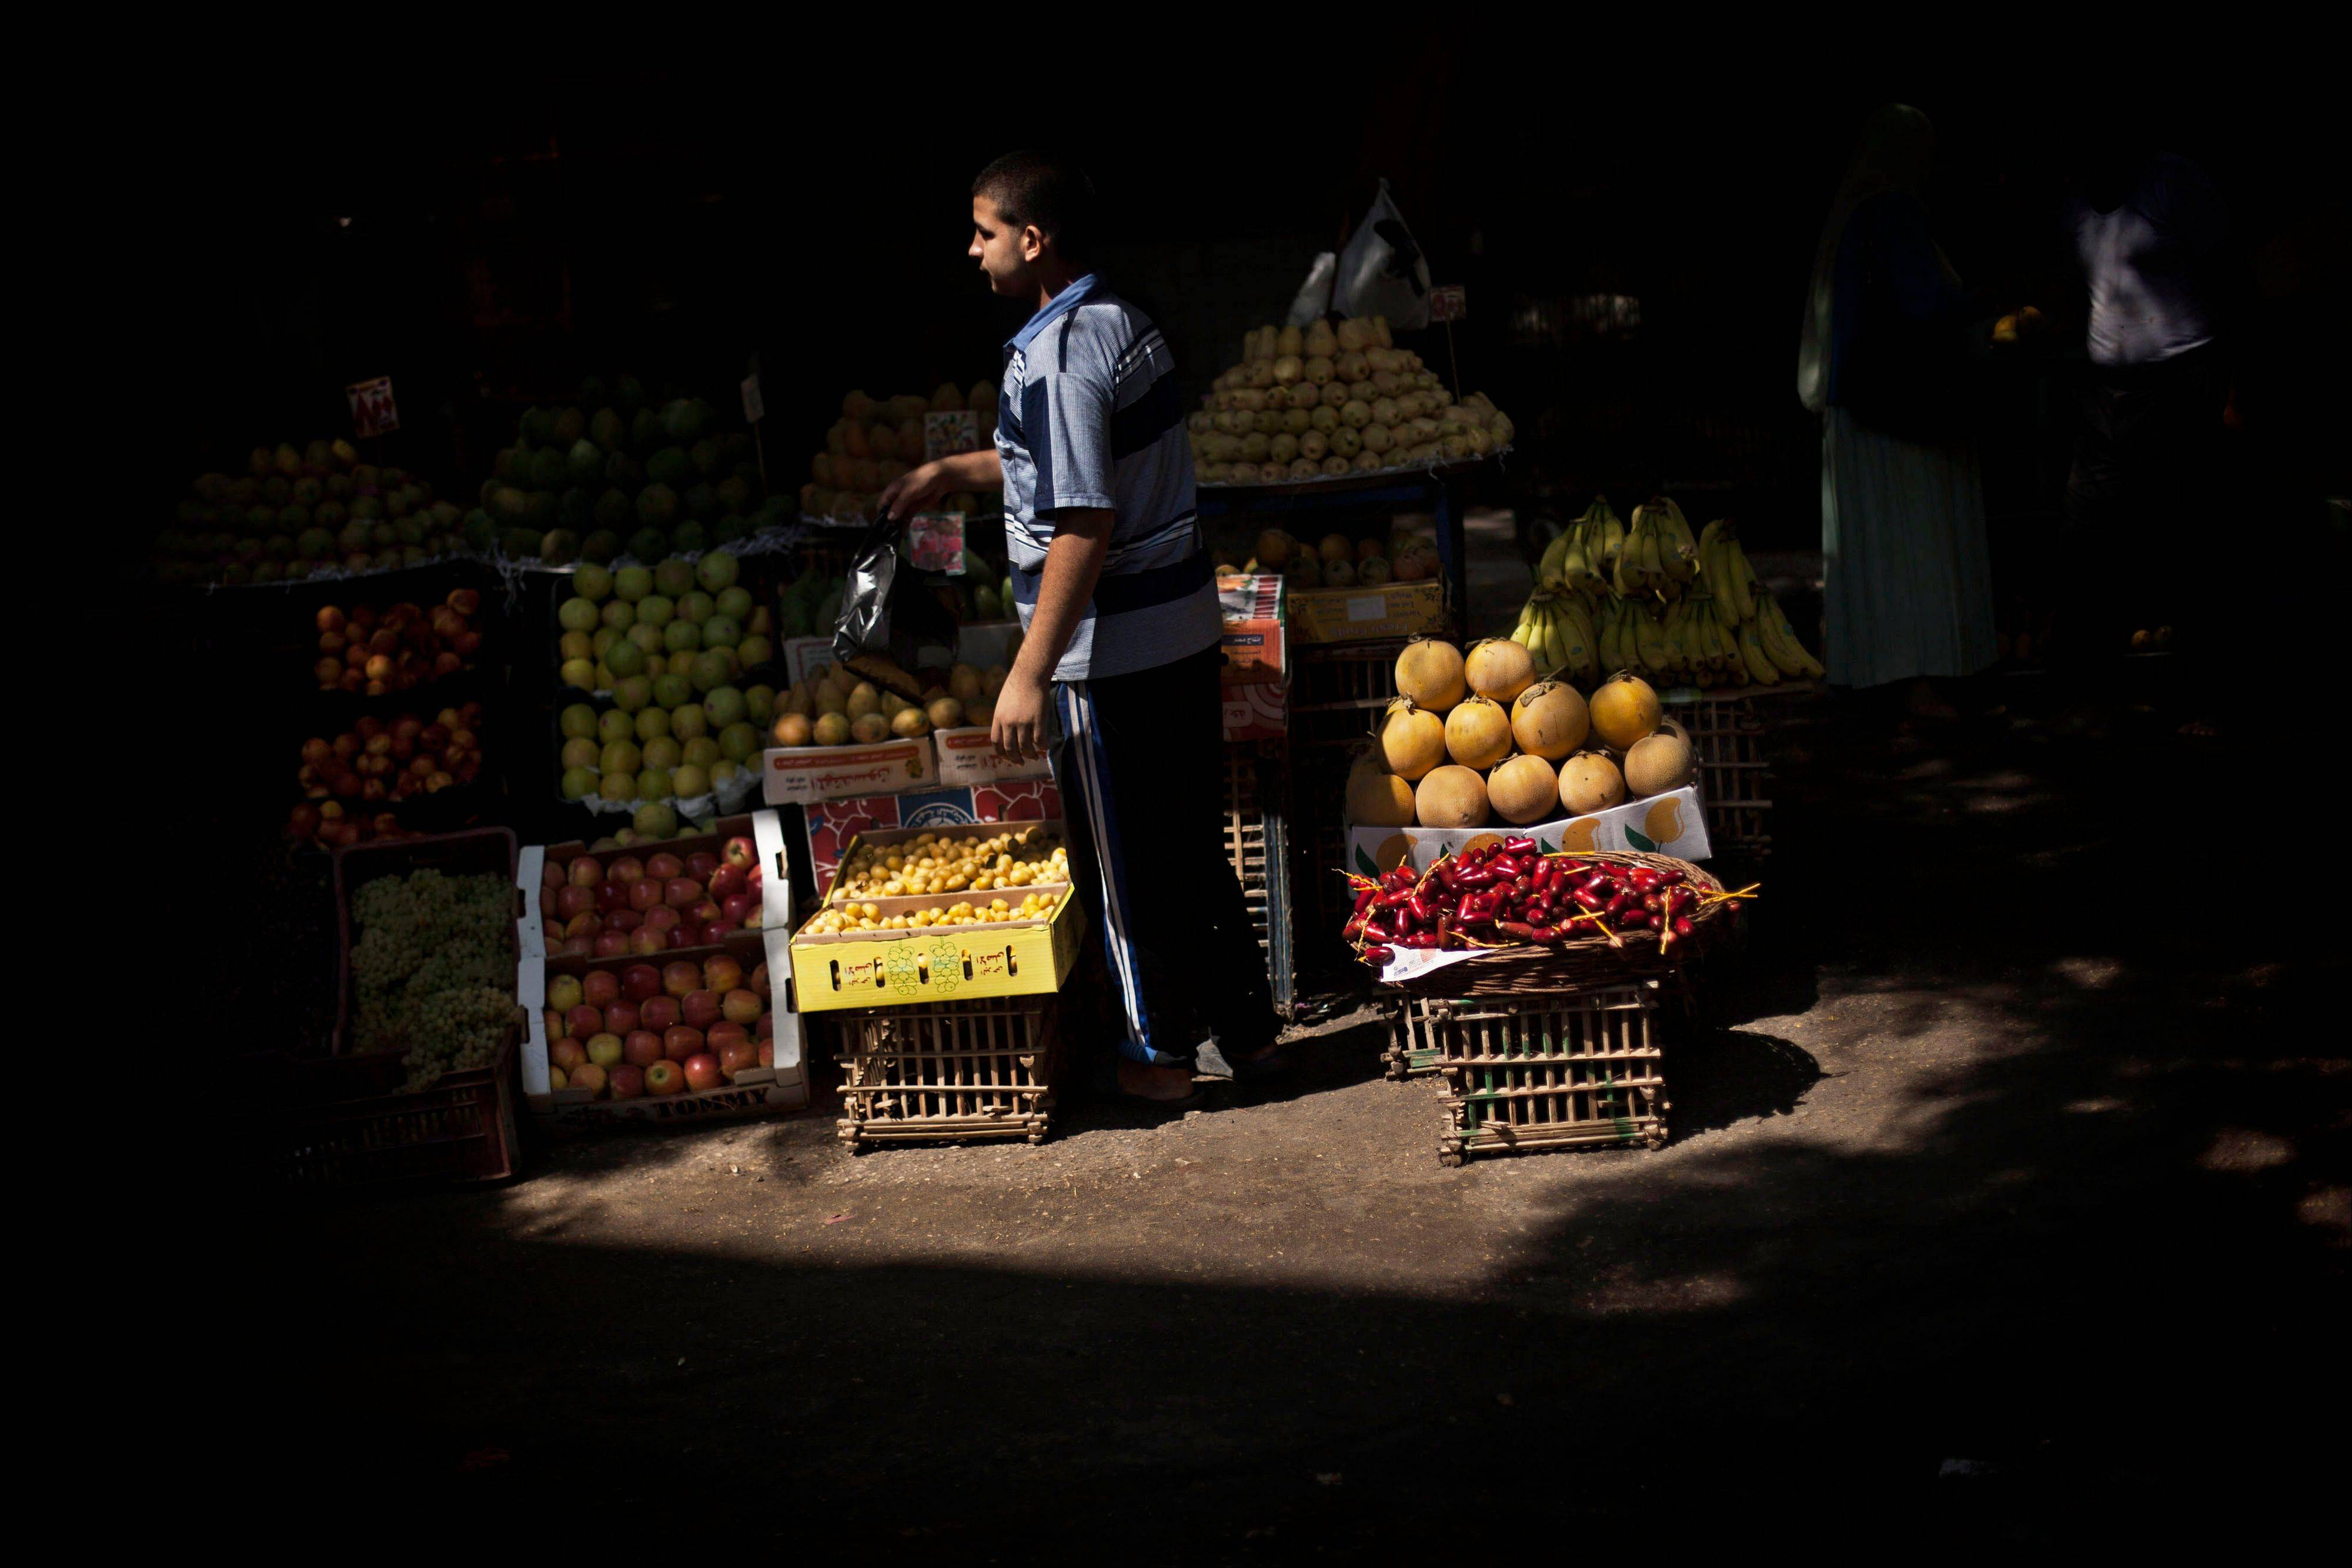 A fruit vendor waits for customers at Suleiman Gohar market in Dokki district in Cairo, Egypt. Egypt's recent turmoil has scared away tourists and�affected the livelihood of the�one in eight Egyptians who earn their living from tourism.